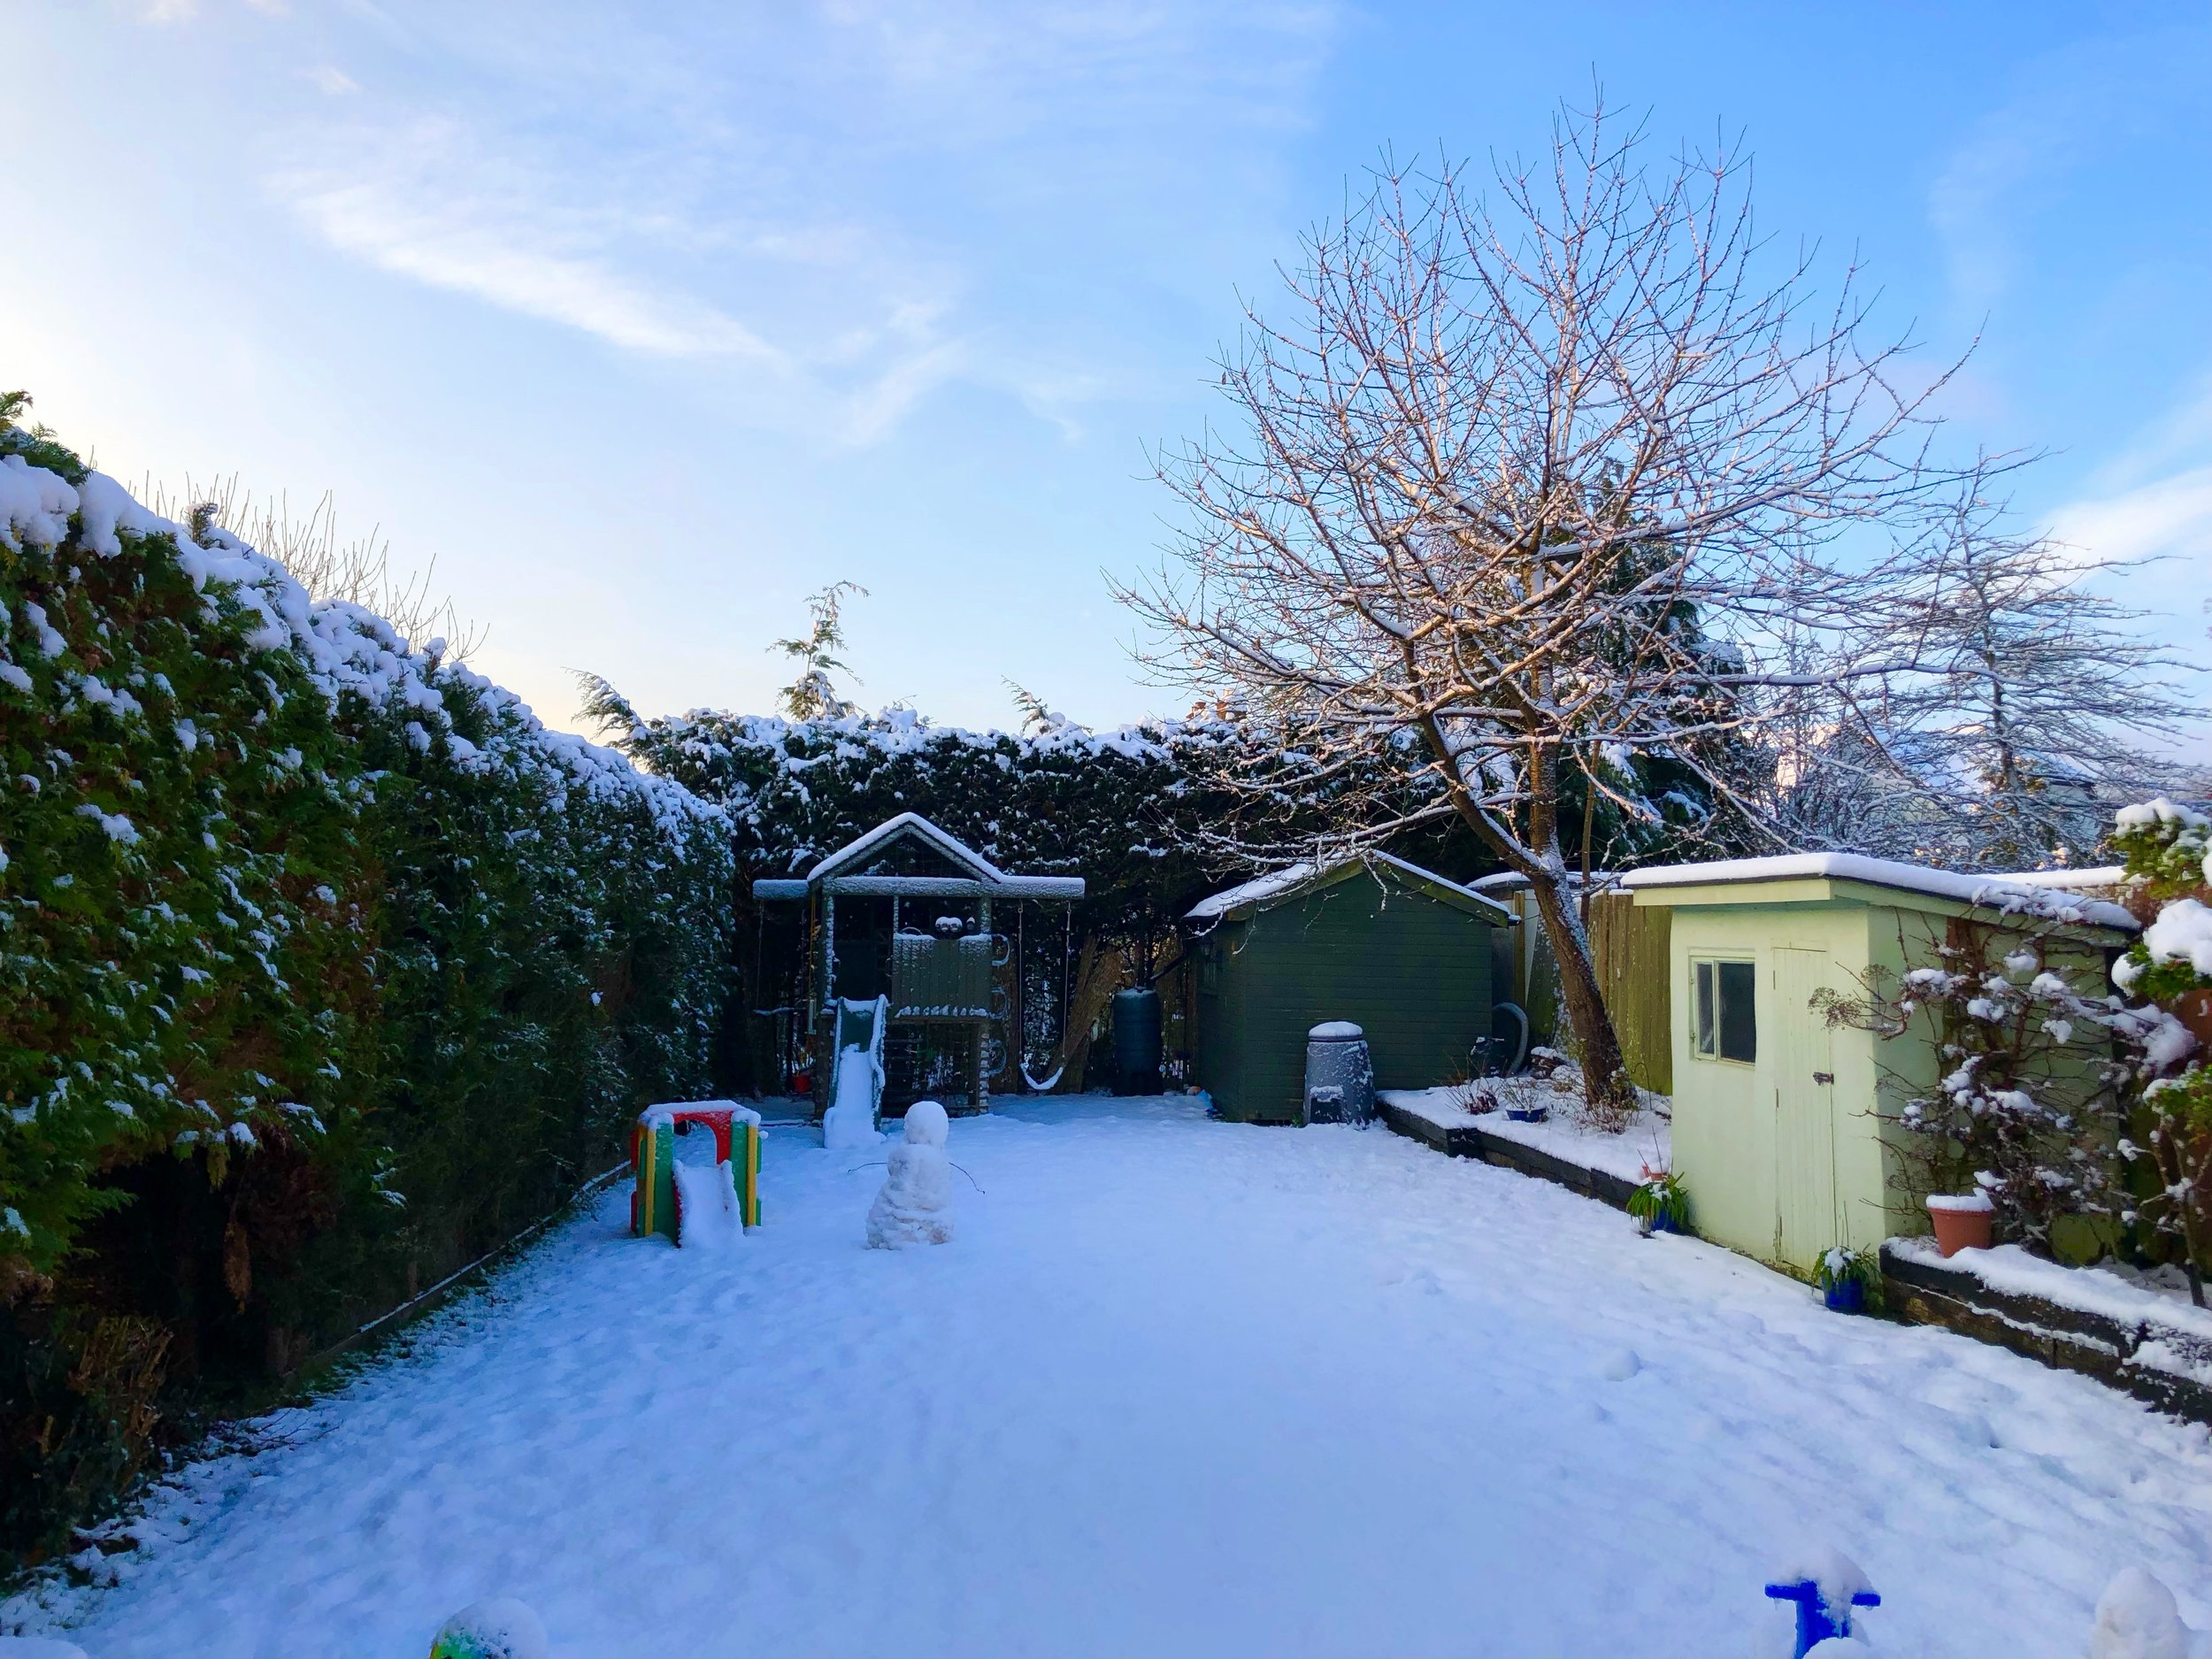 Russ Avery Consulting HQ in the snow! February 2019.